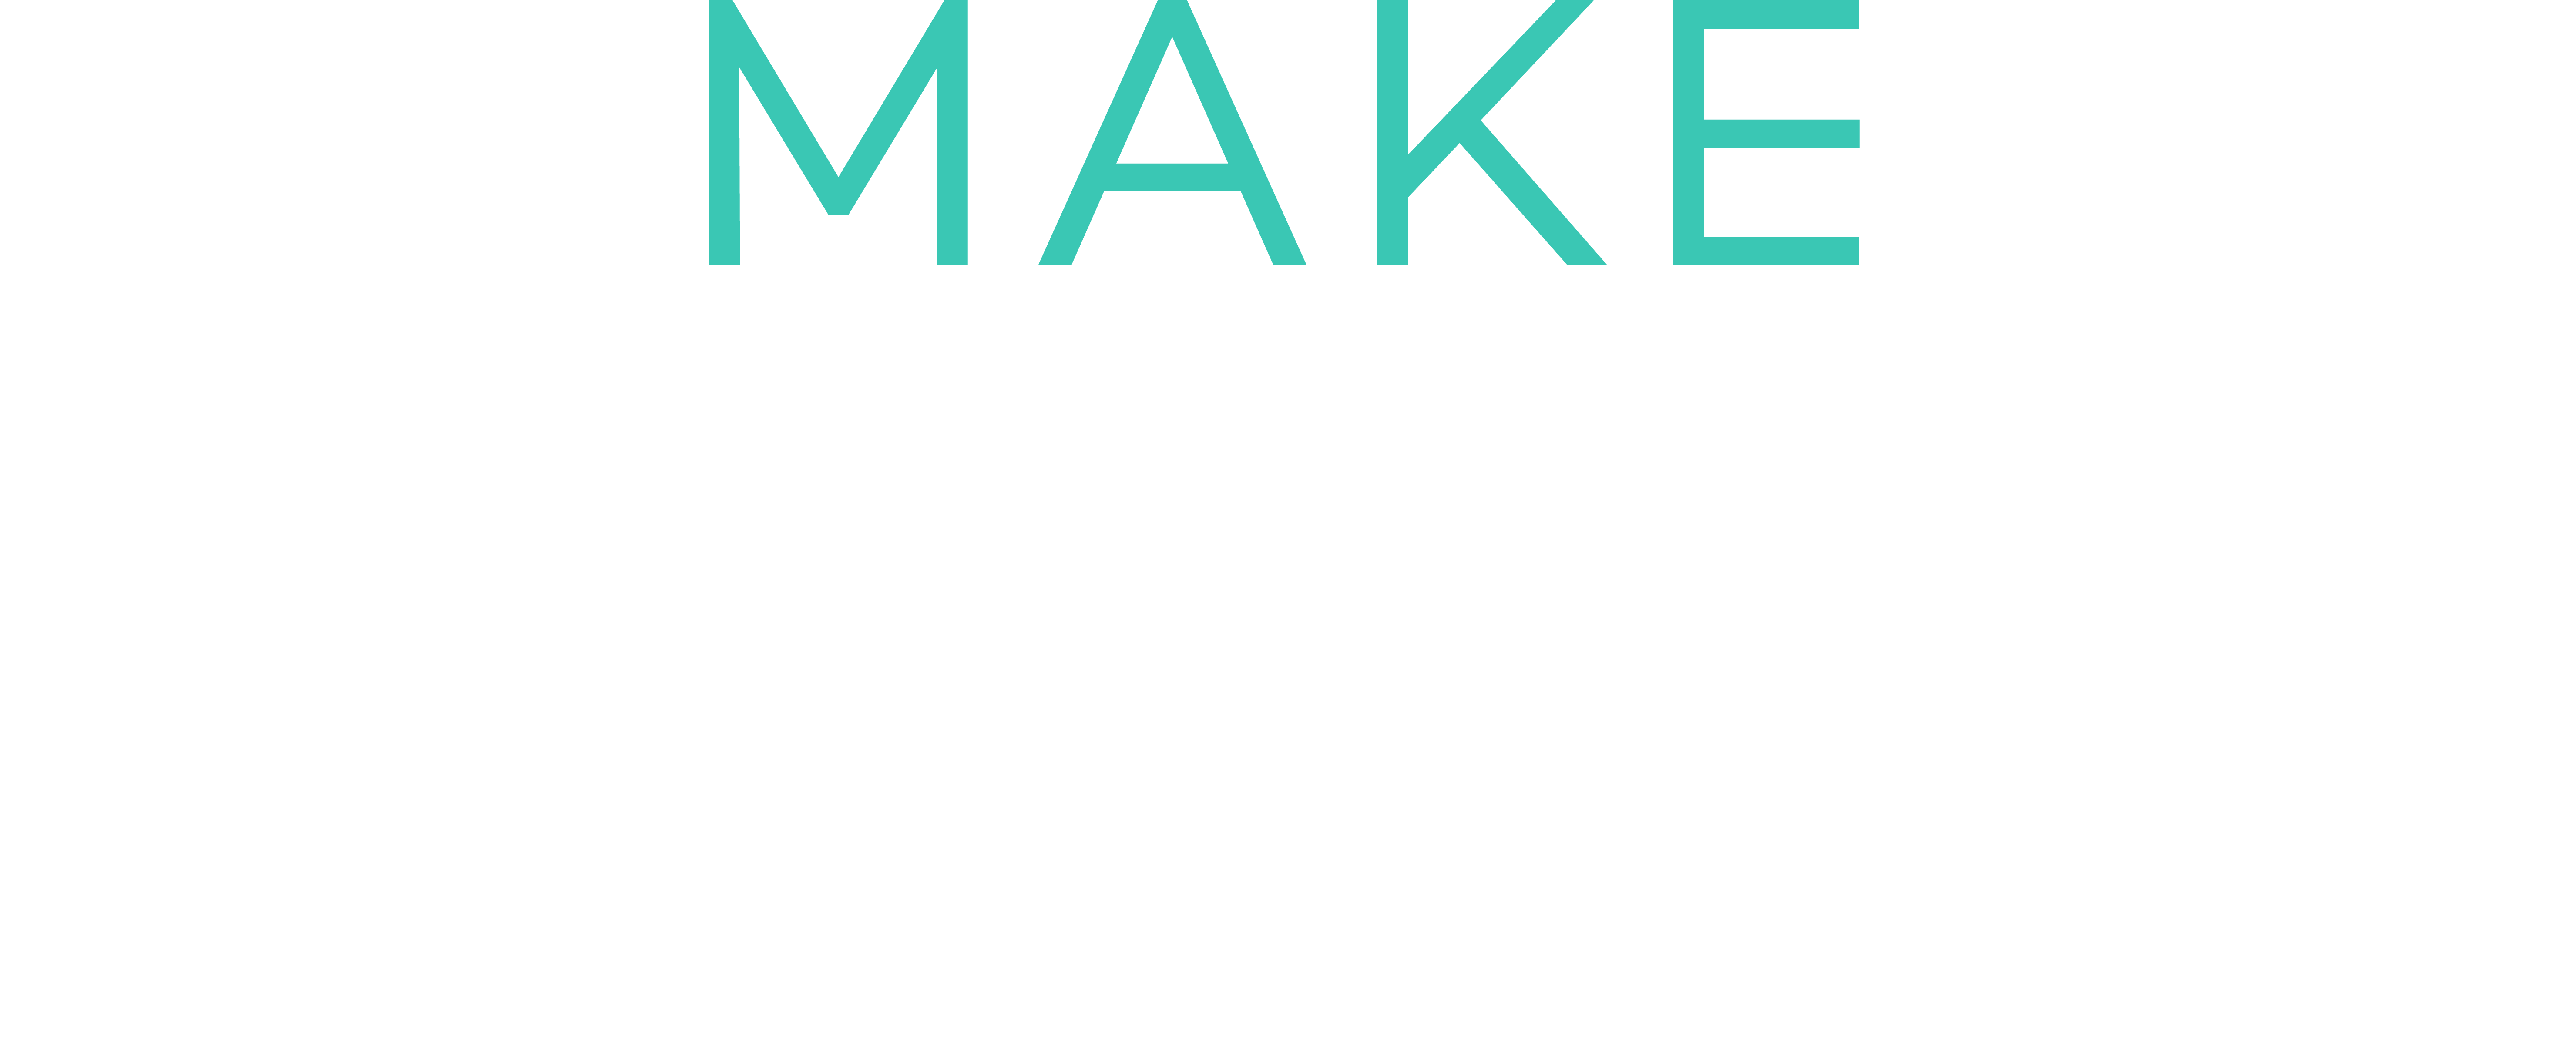 Make Equals logotyp